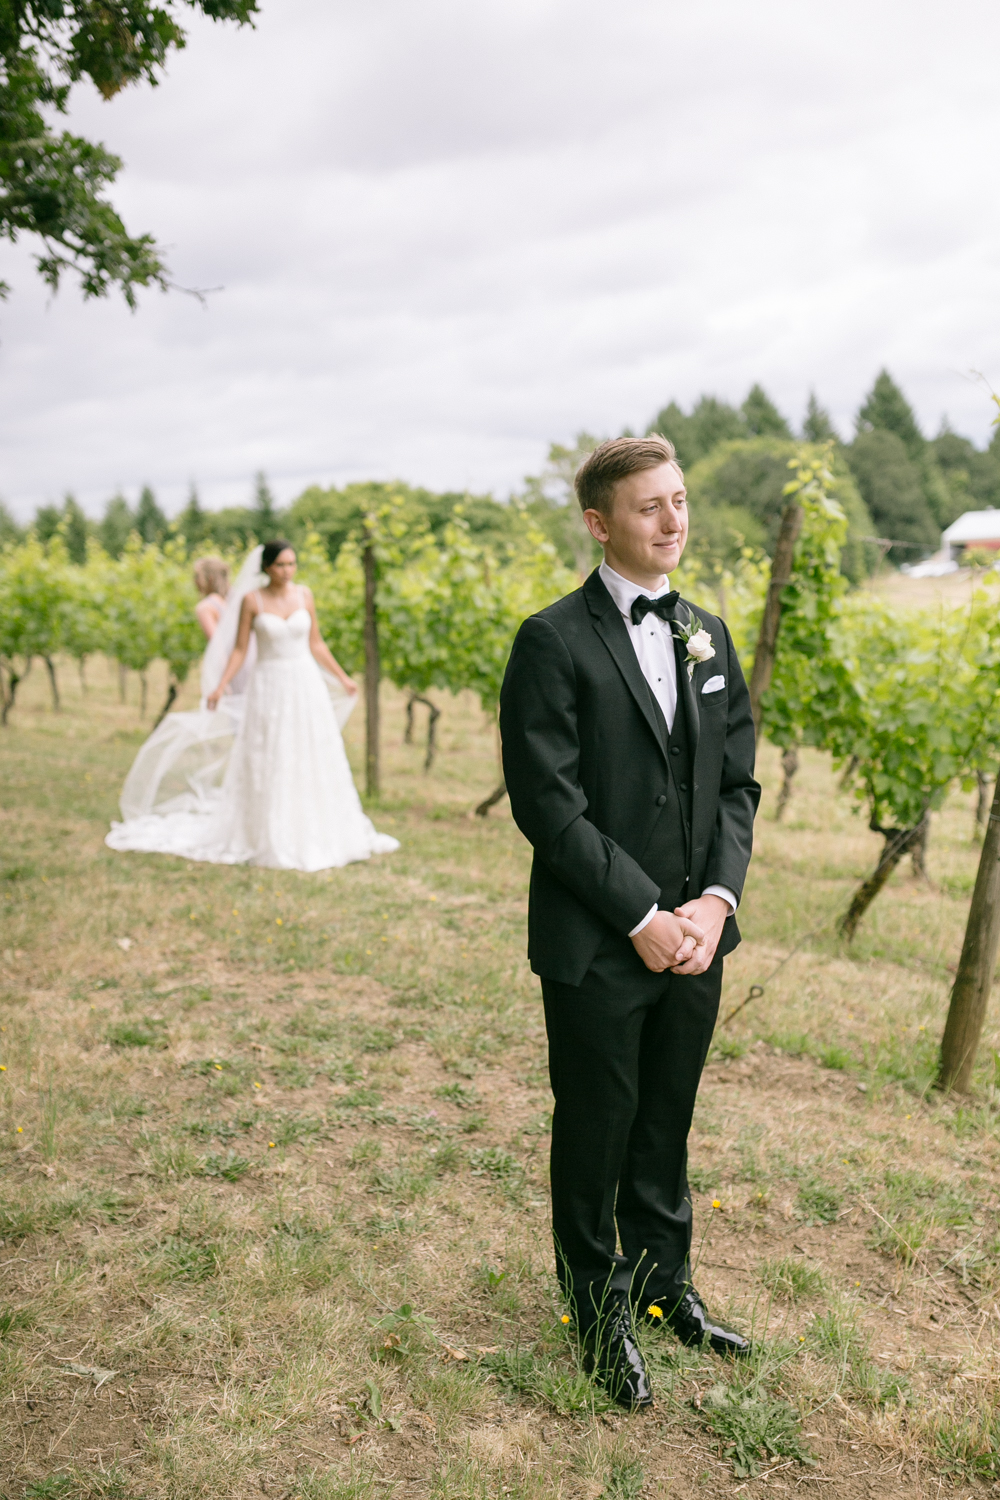 Youngberg Hill Vineyard Wedding in Wine Country Oregon - Corrie Mick Photography-36.jpg